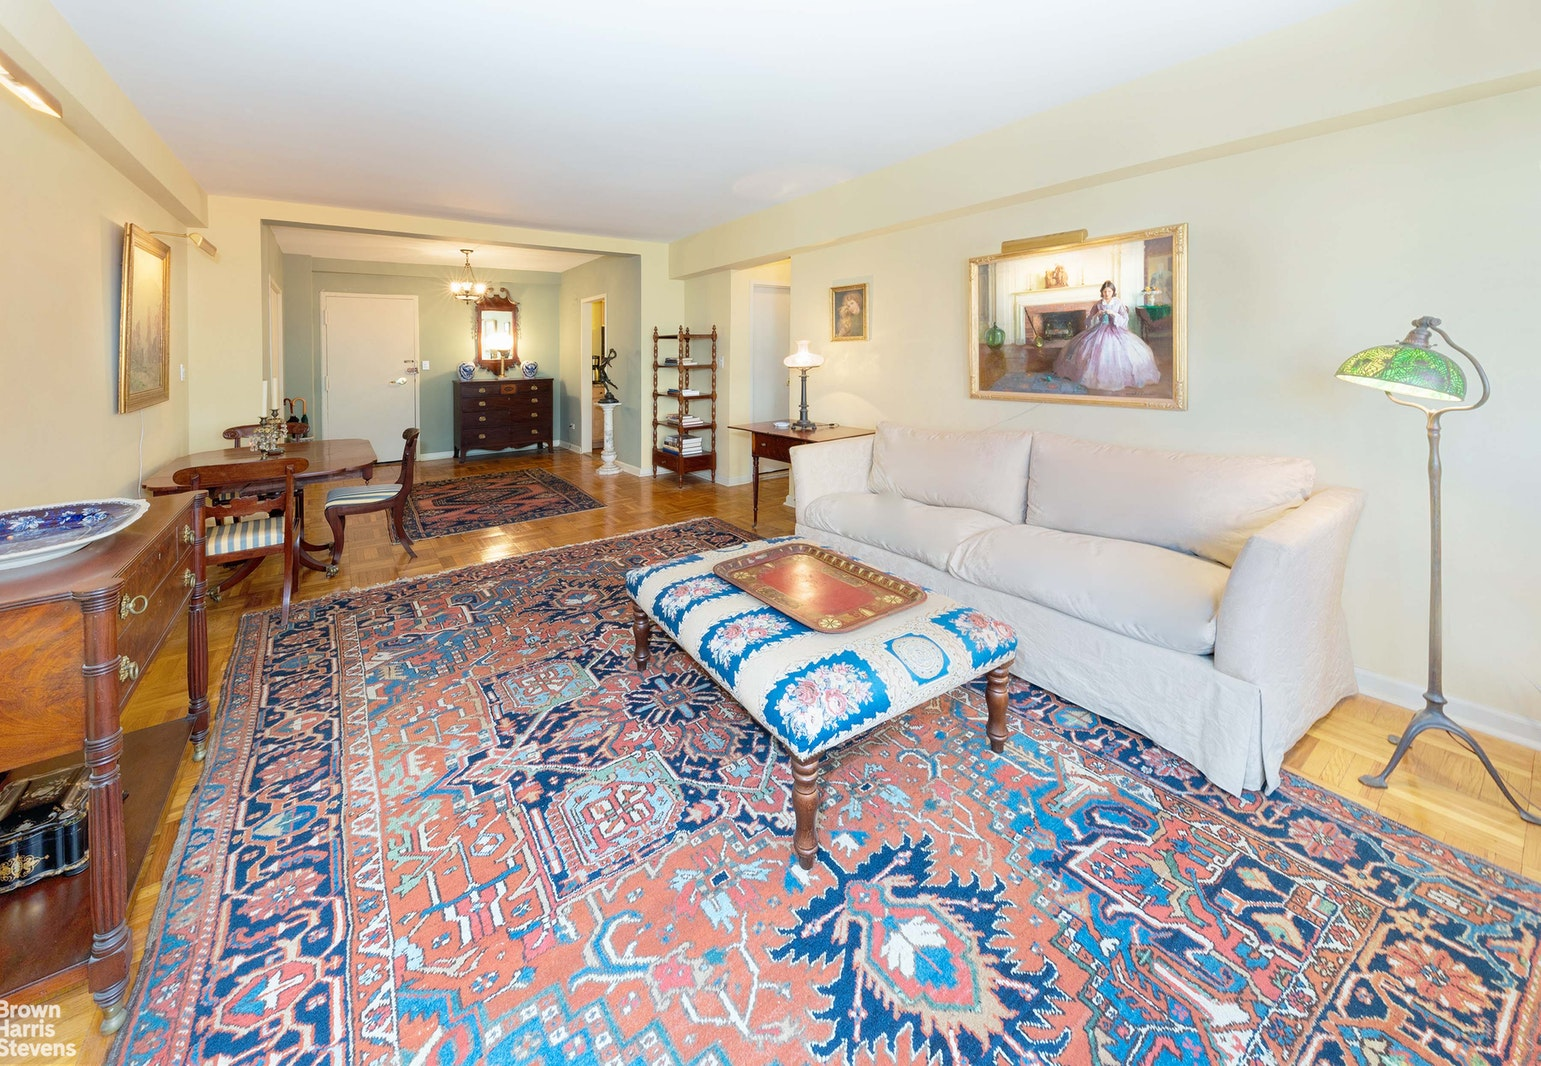 305 East 72nd Street 5f, Upper East Side, NYC, 10021, $649,000, Property For Sale, Halstead Real Estate, Photo 2